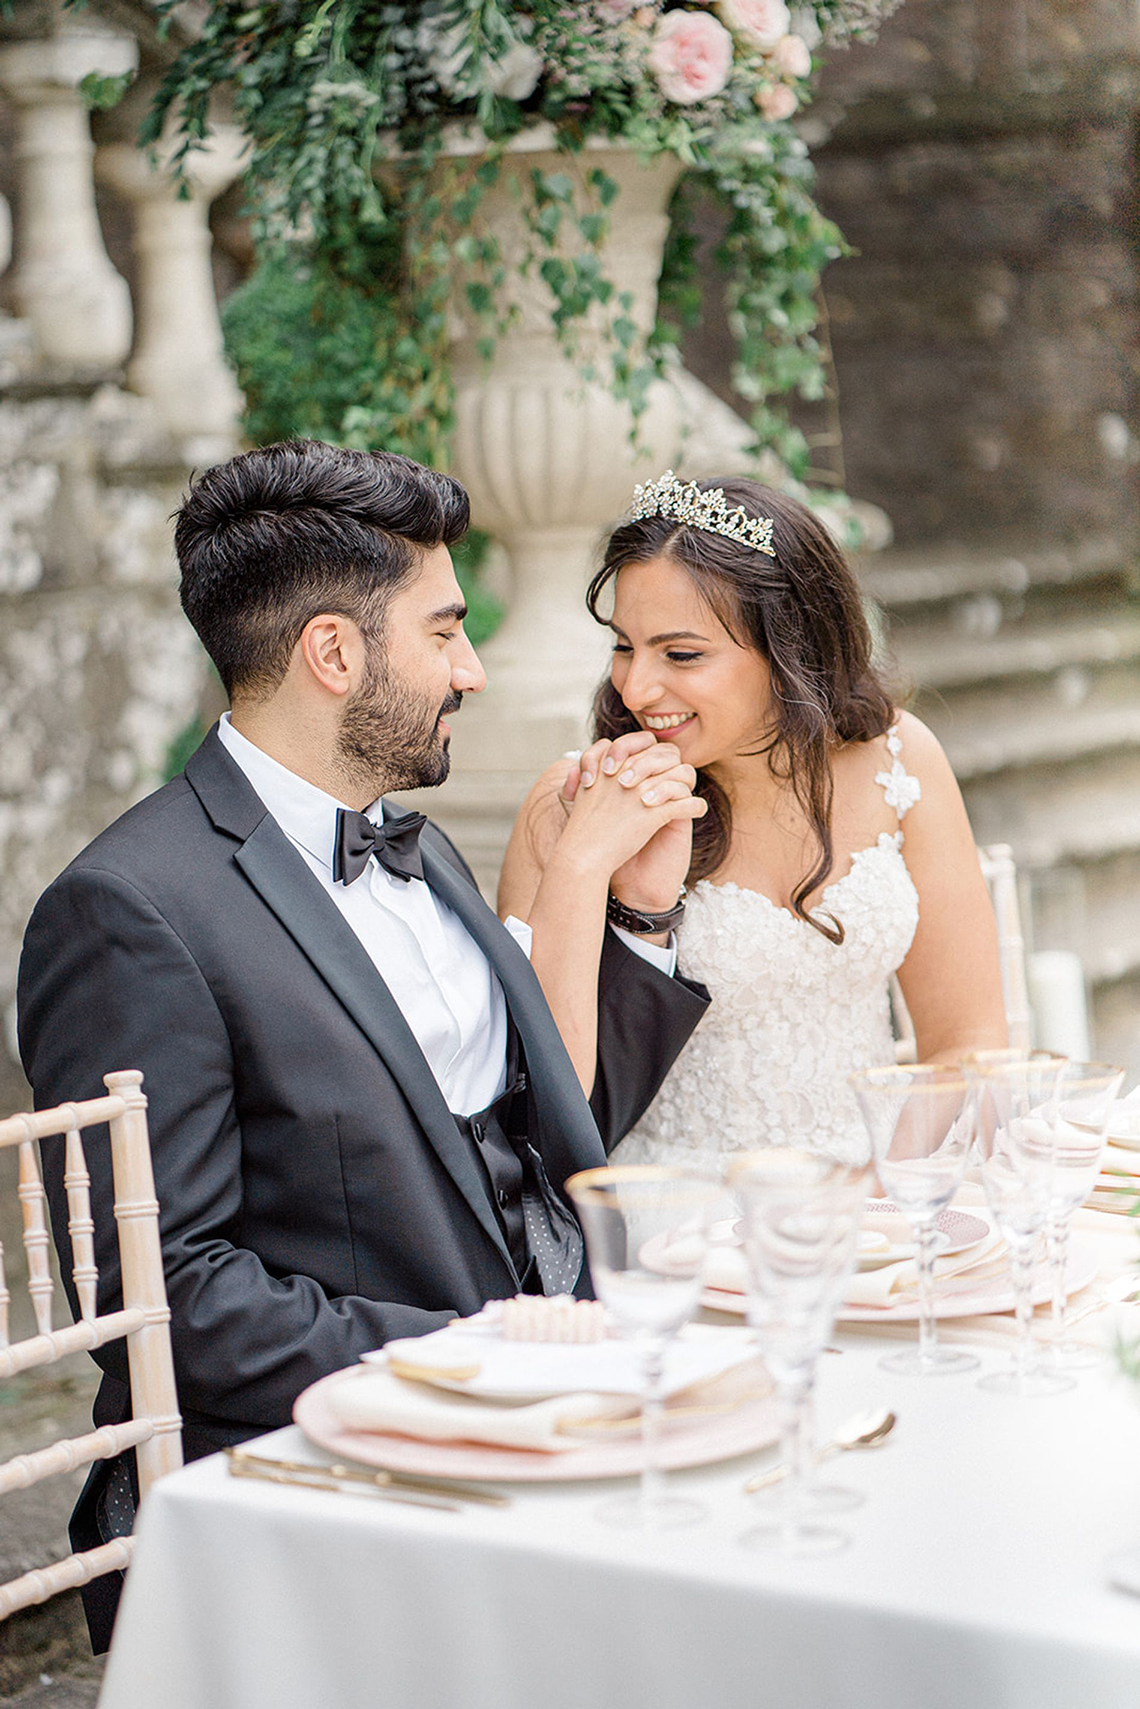 Fairytale Royal English Wedding Inspiration at Clearwater Castle – Sara Cooper Photography – Smitten Weddings 19